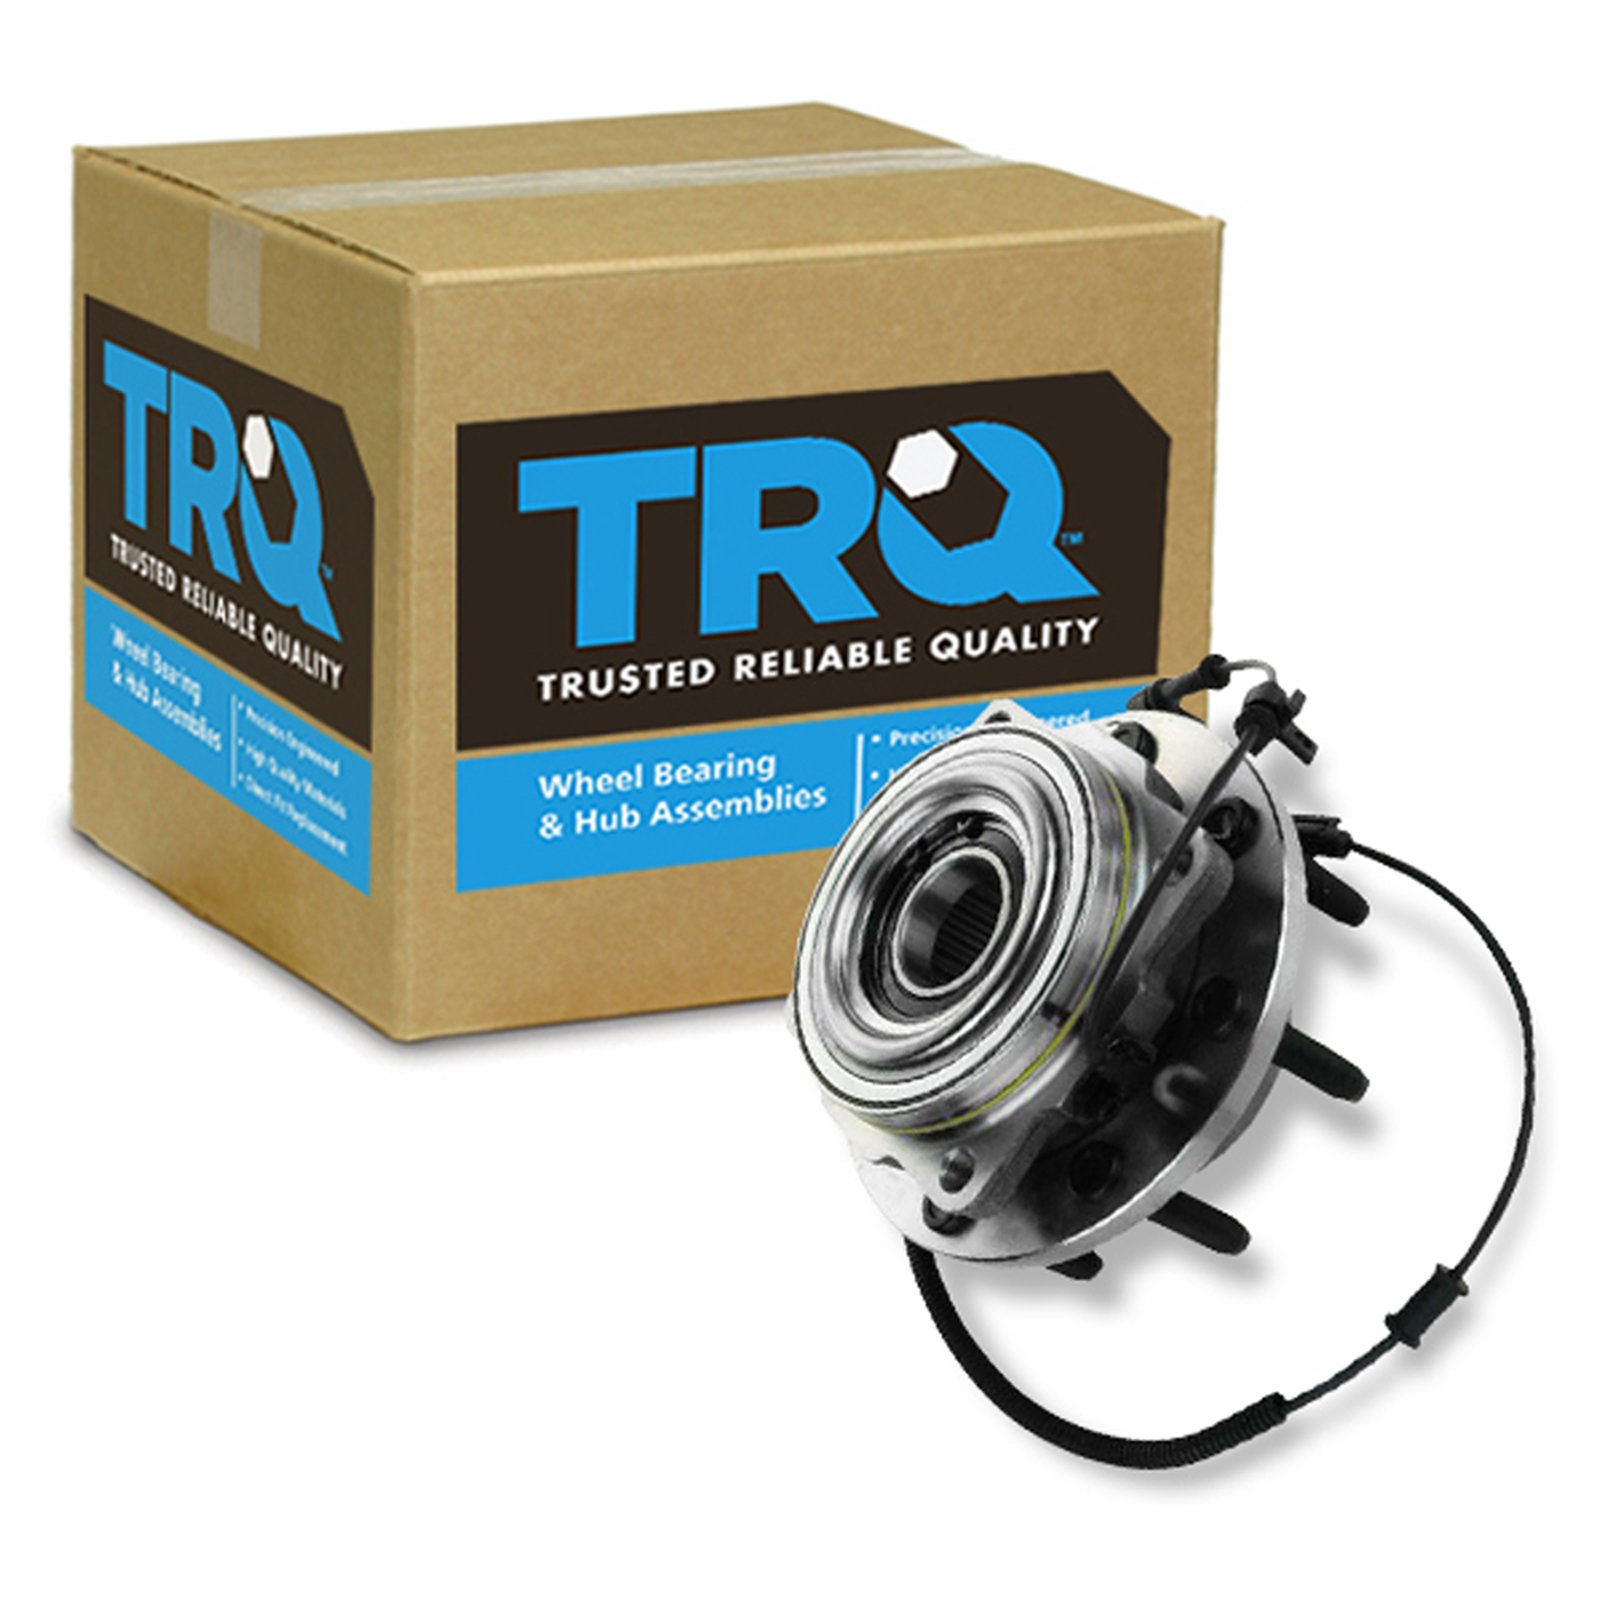 TRQ Wheel Bearing Hub Assembly Front or for 11-15 F250 F350 Super Duty 4WD SRW by TRQ